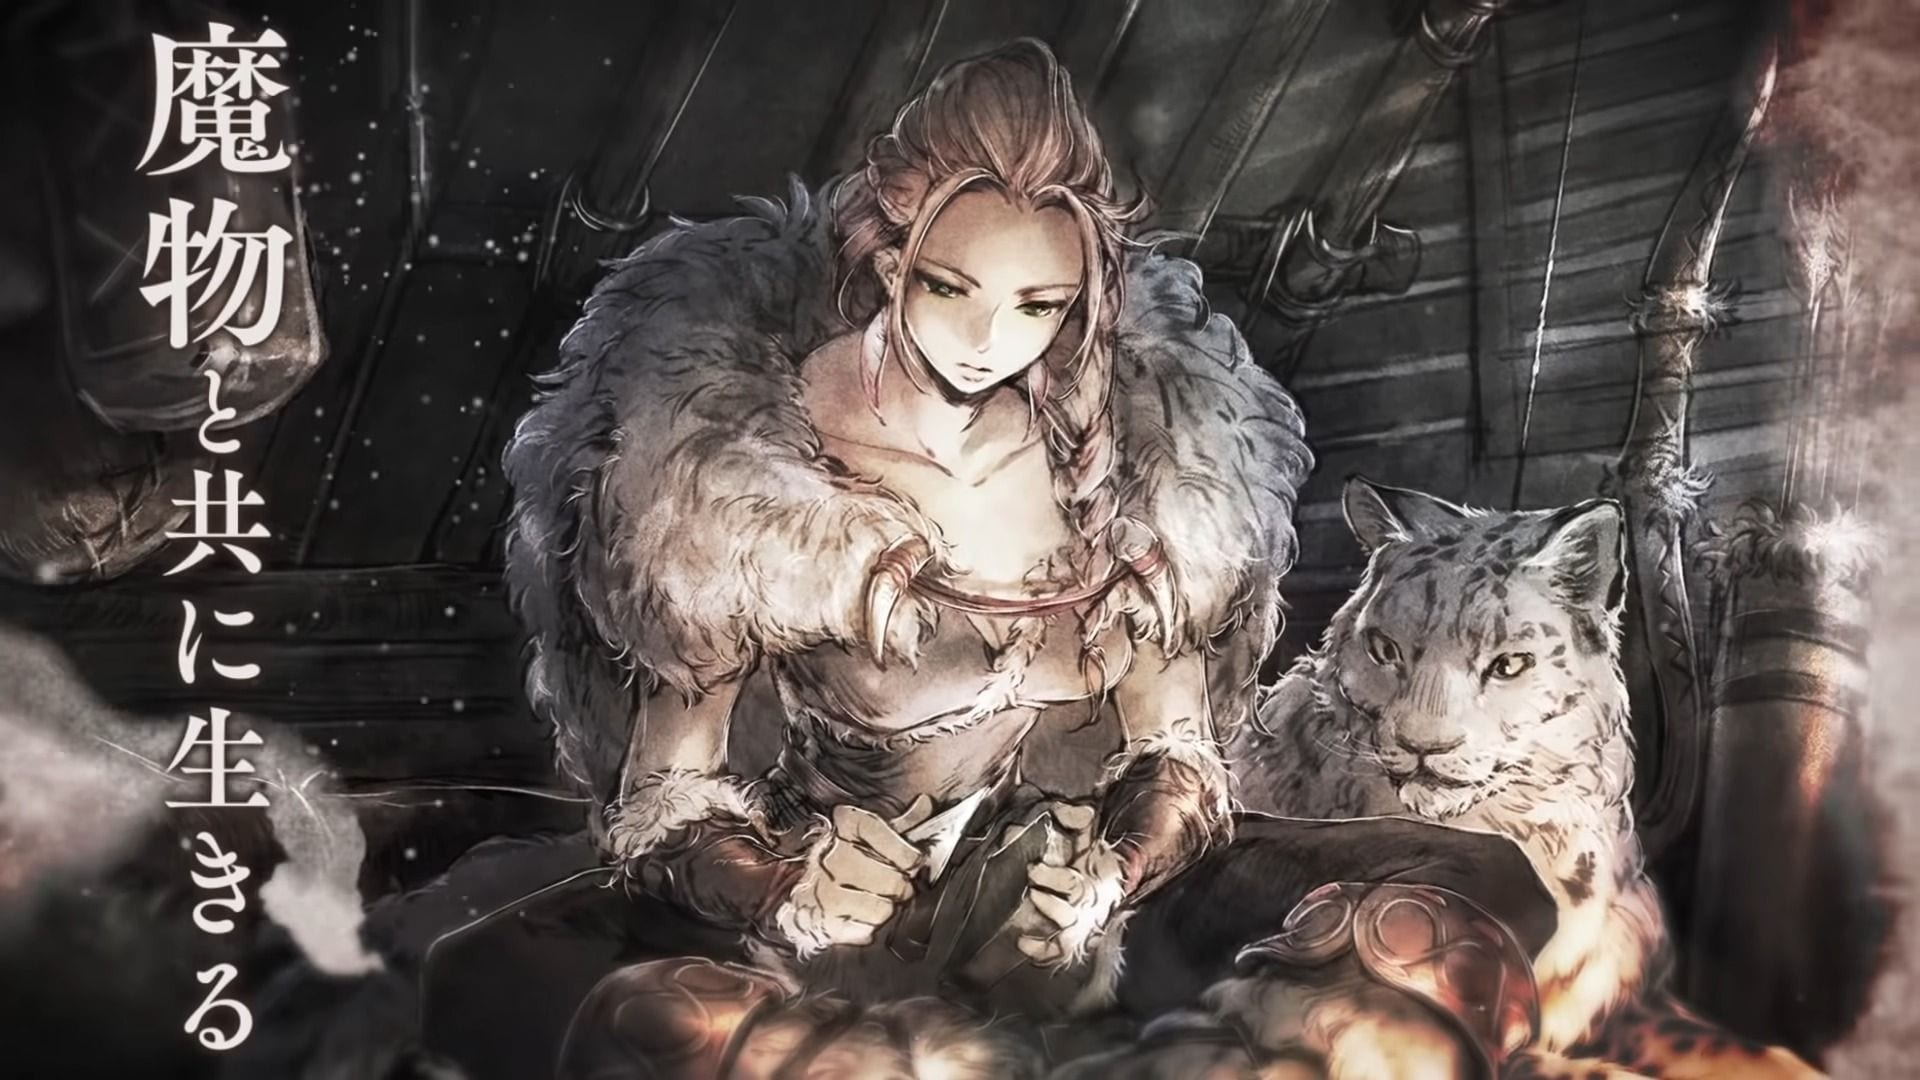 Octopath Traveler Prequel for iOS & Android Reveals H'aanit With New Trailer 1